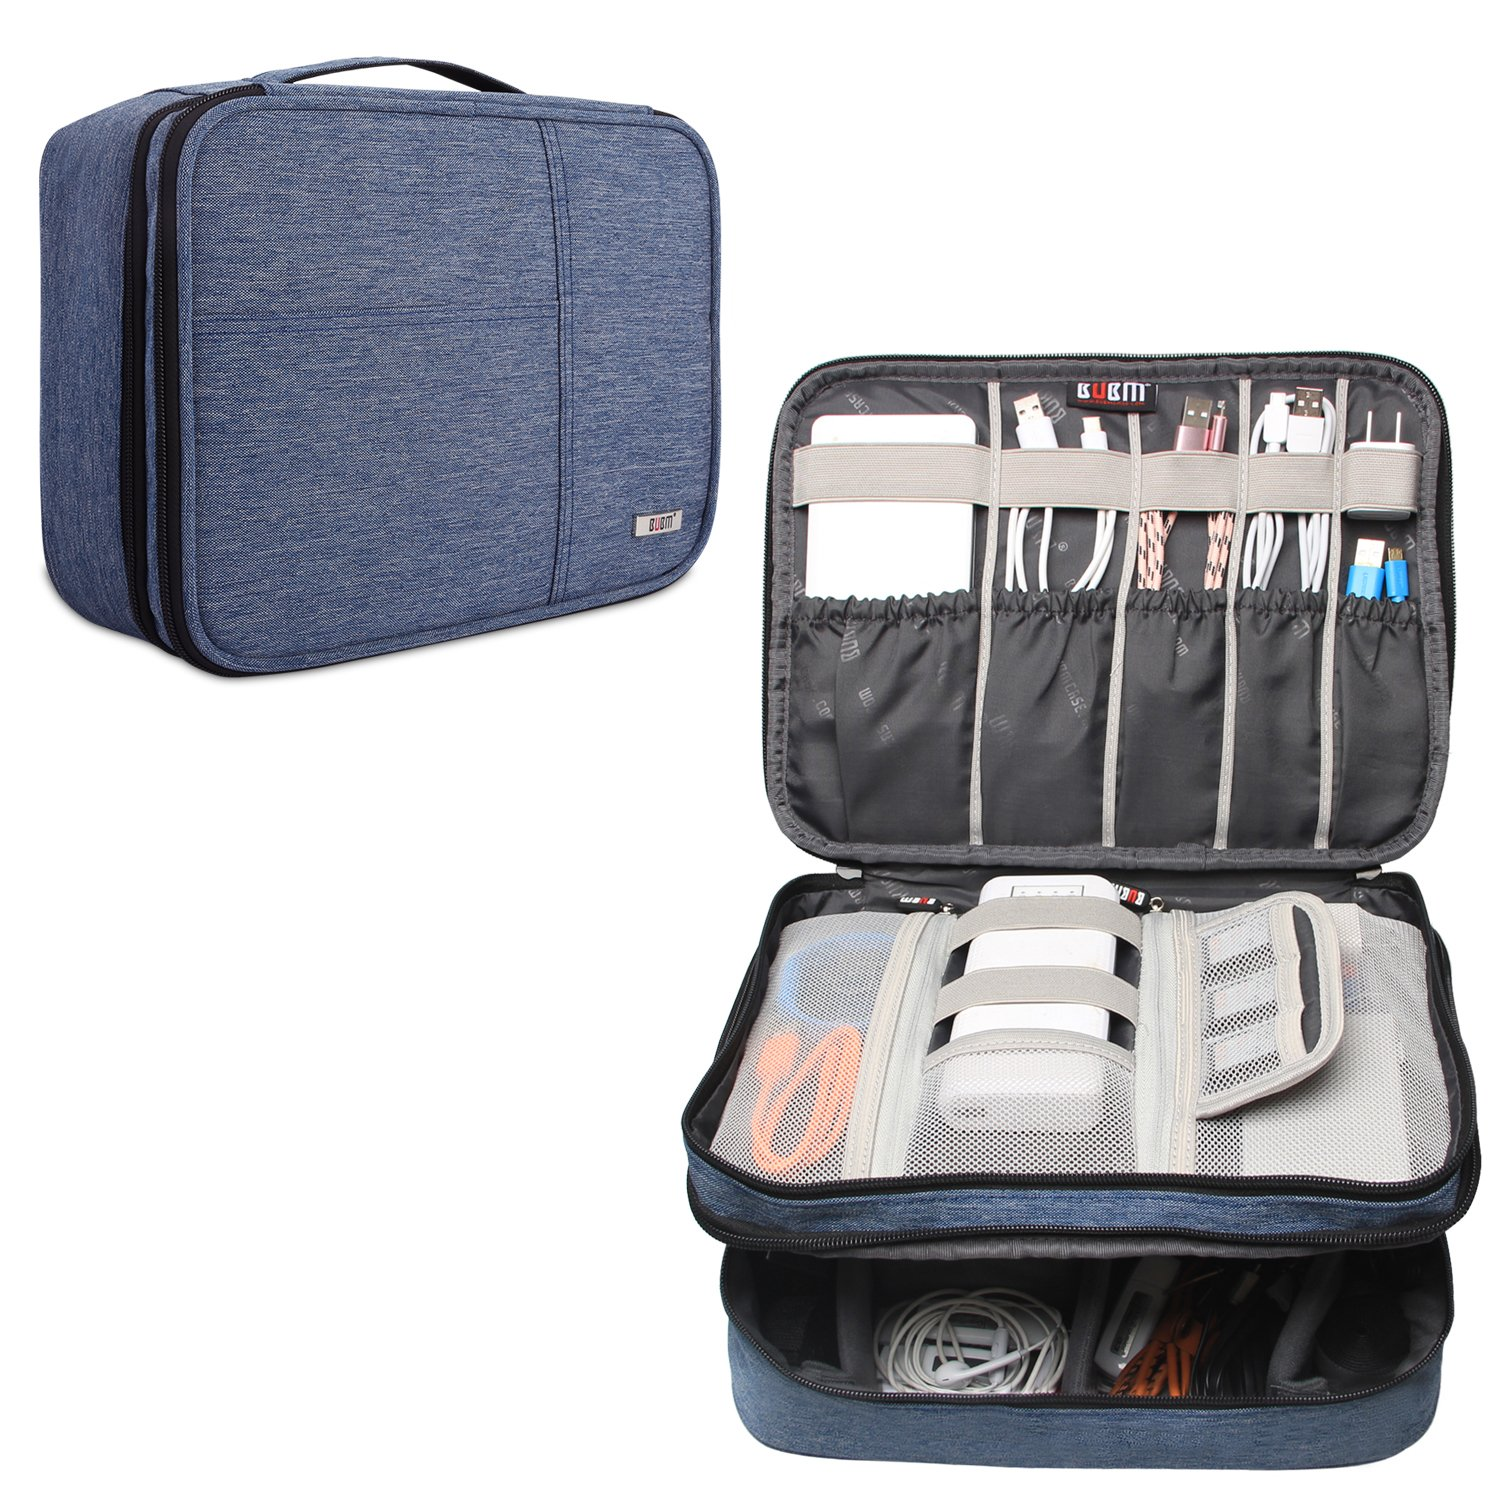 BUBM Travel Organizer, Electronic Accessories Storage Bag for Cord, Memory Card, Power Bank and More, A Pouch fits for iPad Pro (Extra Large, Denim Blue)